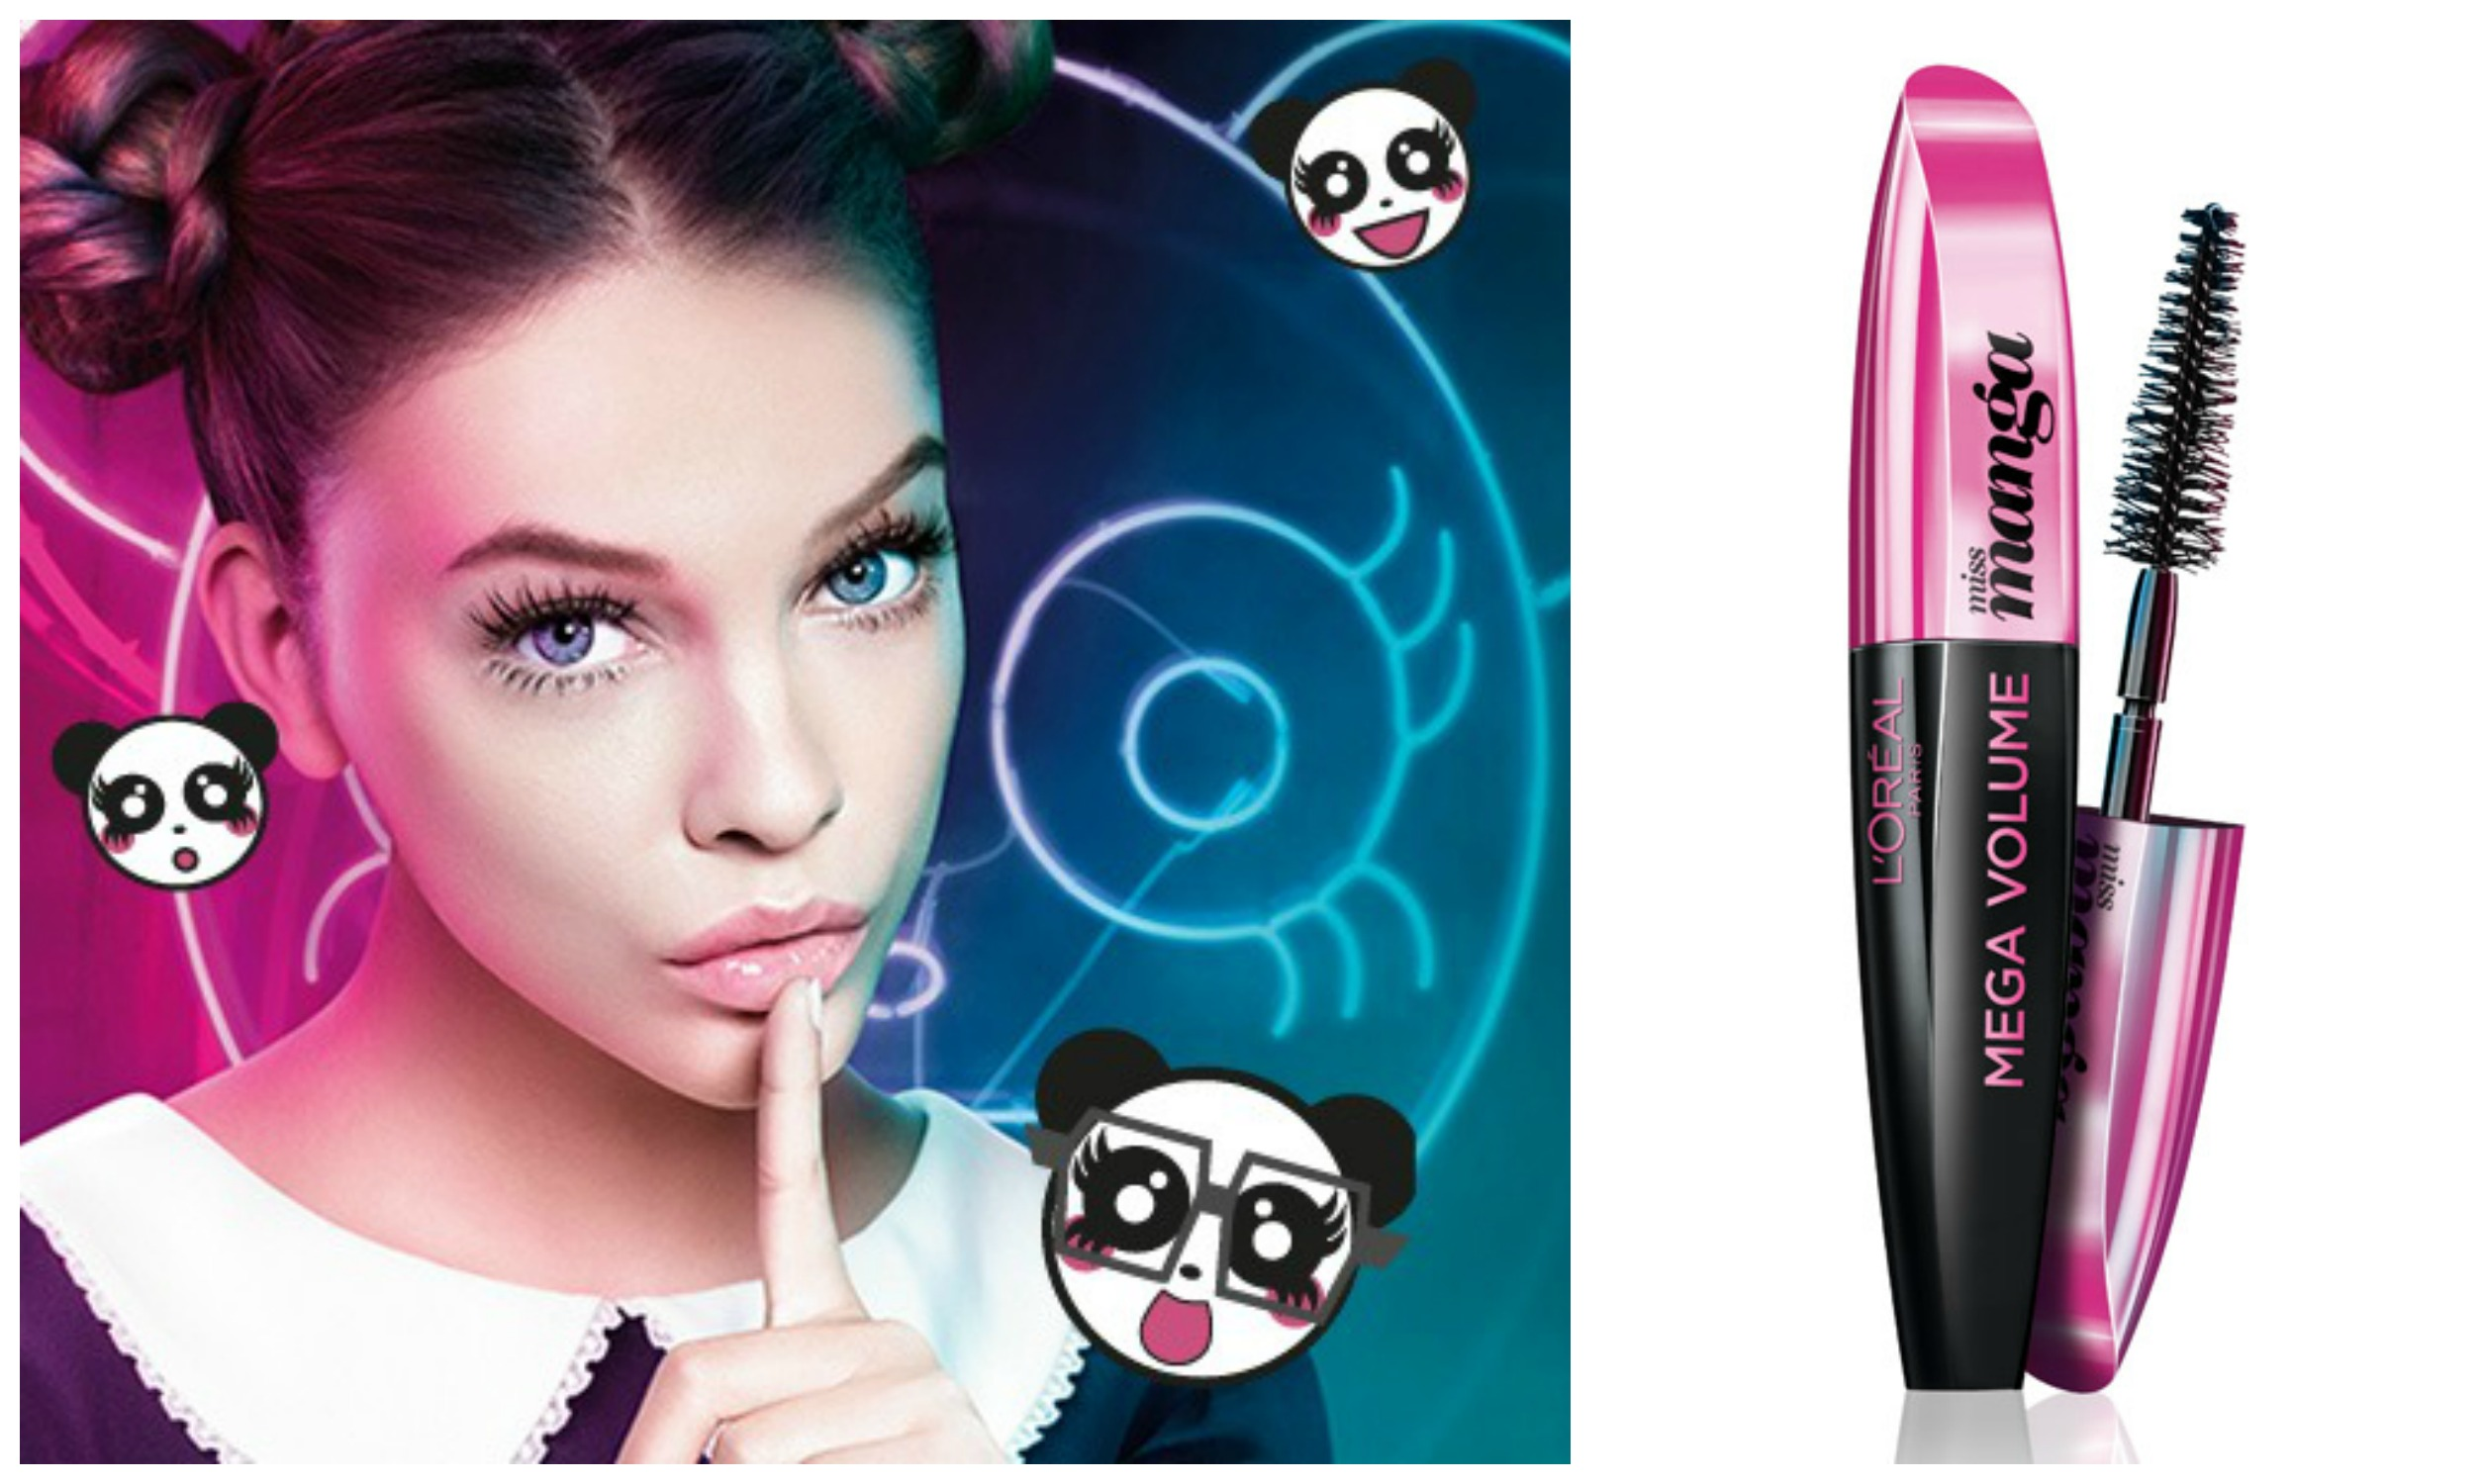 L'Oreal eye mascara